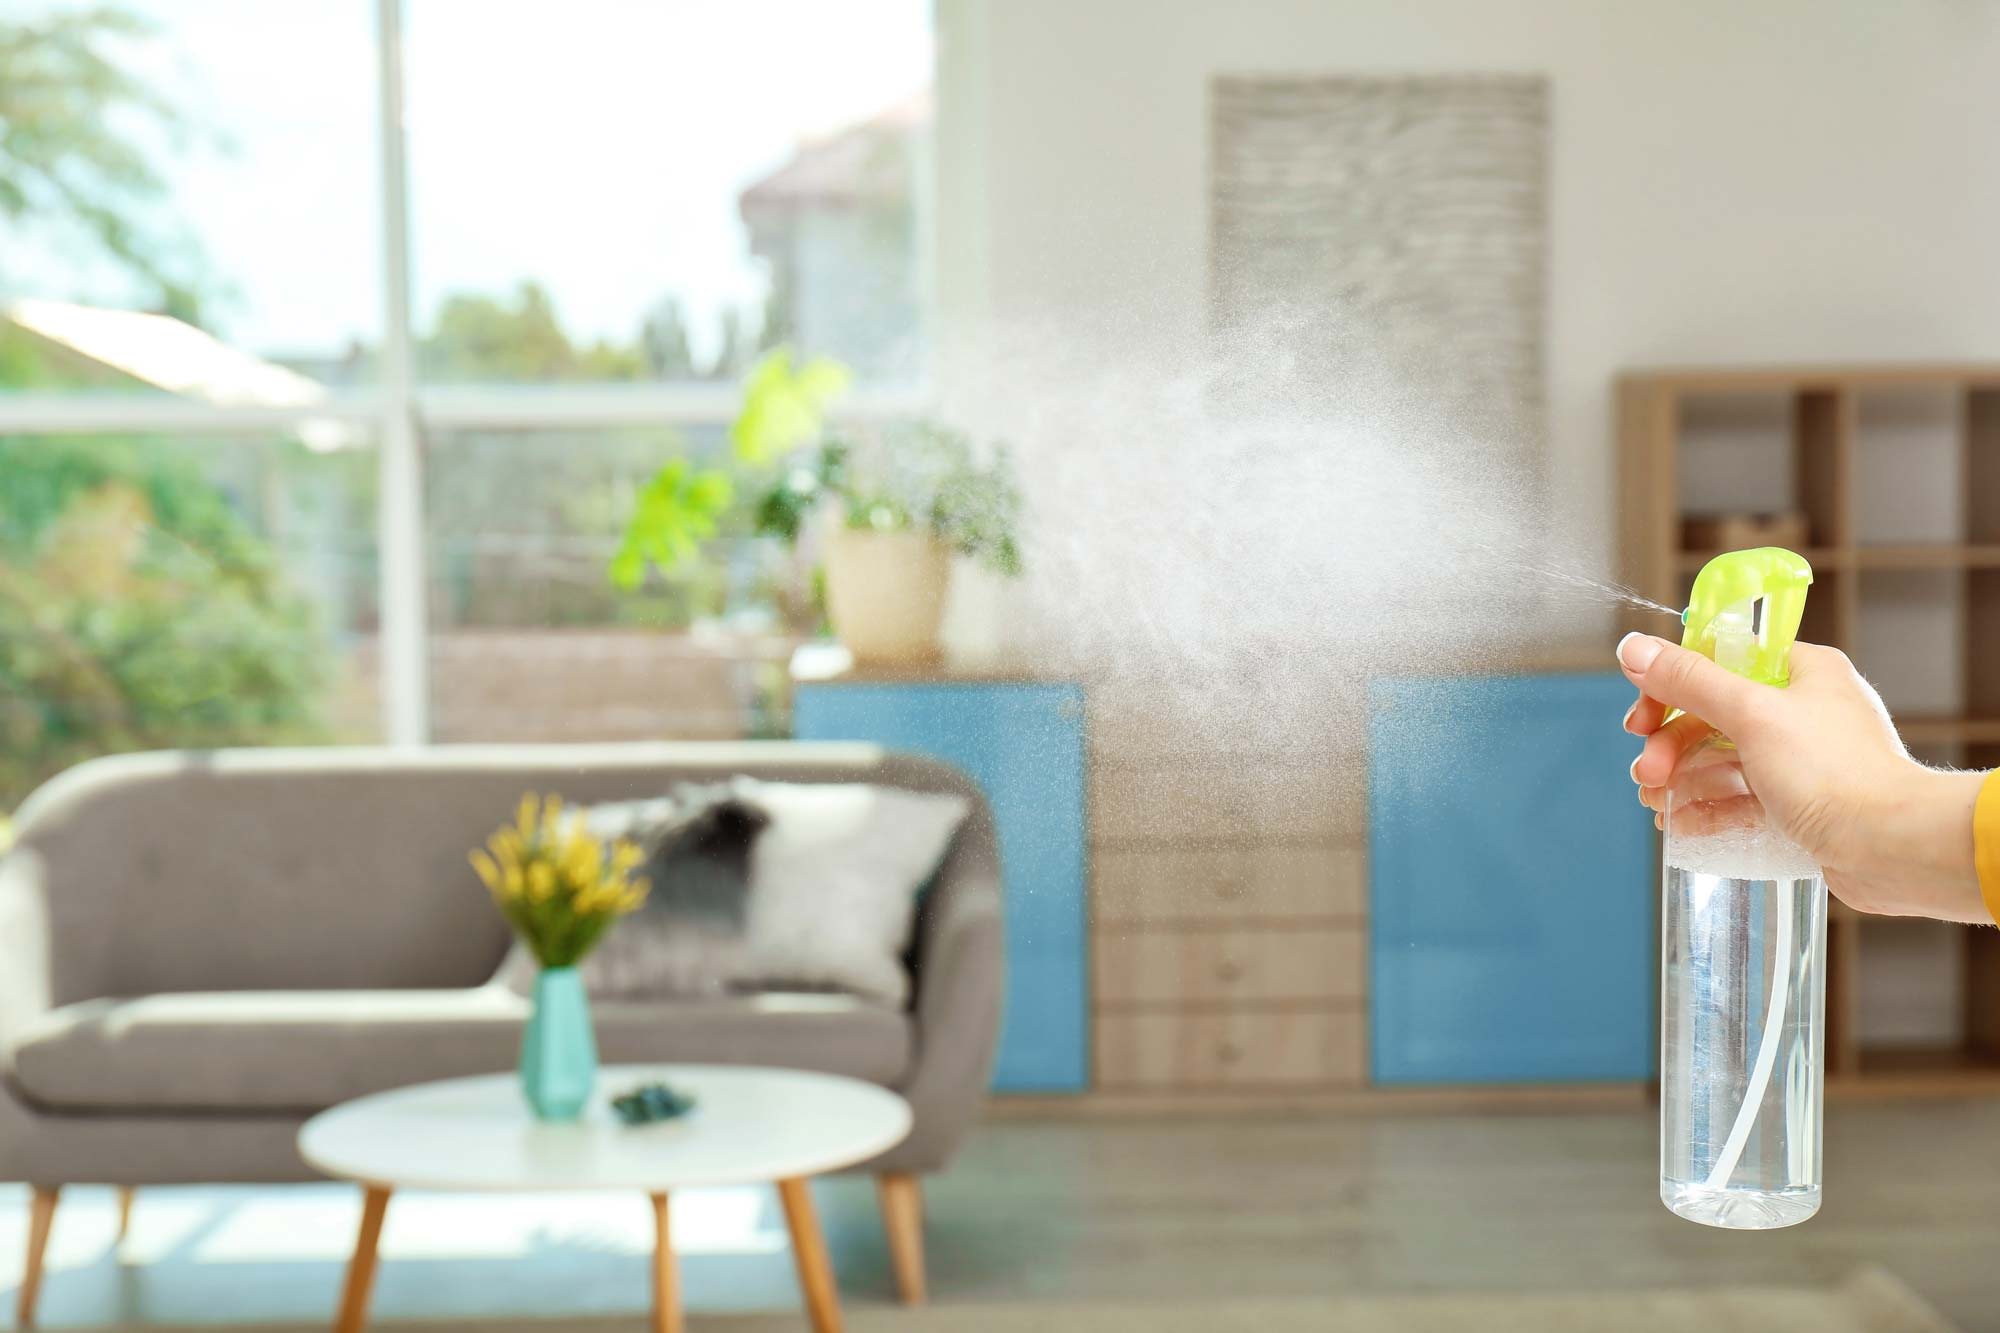 spray air freshener in a room